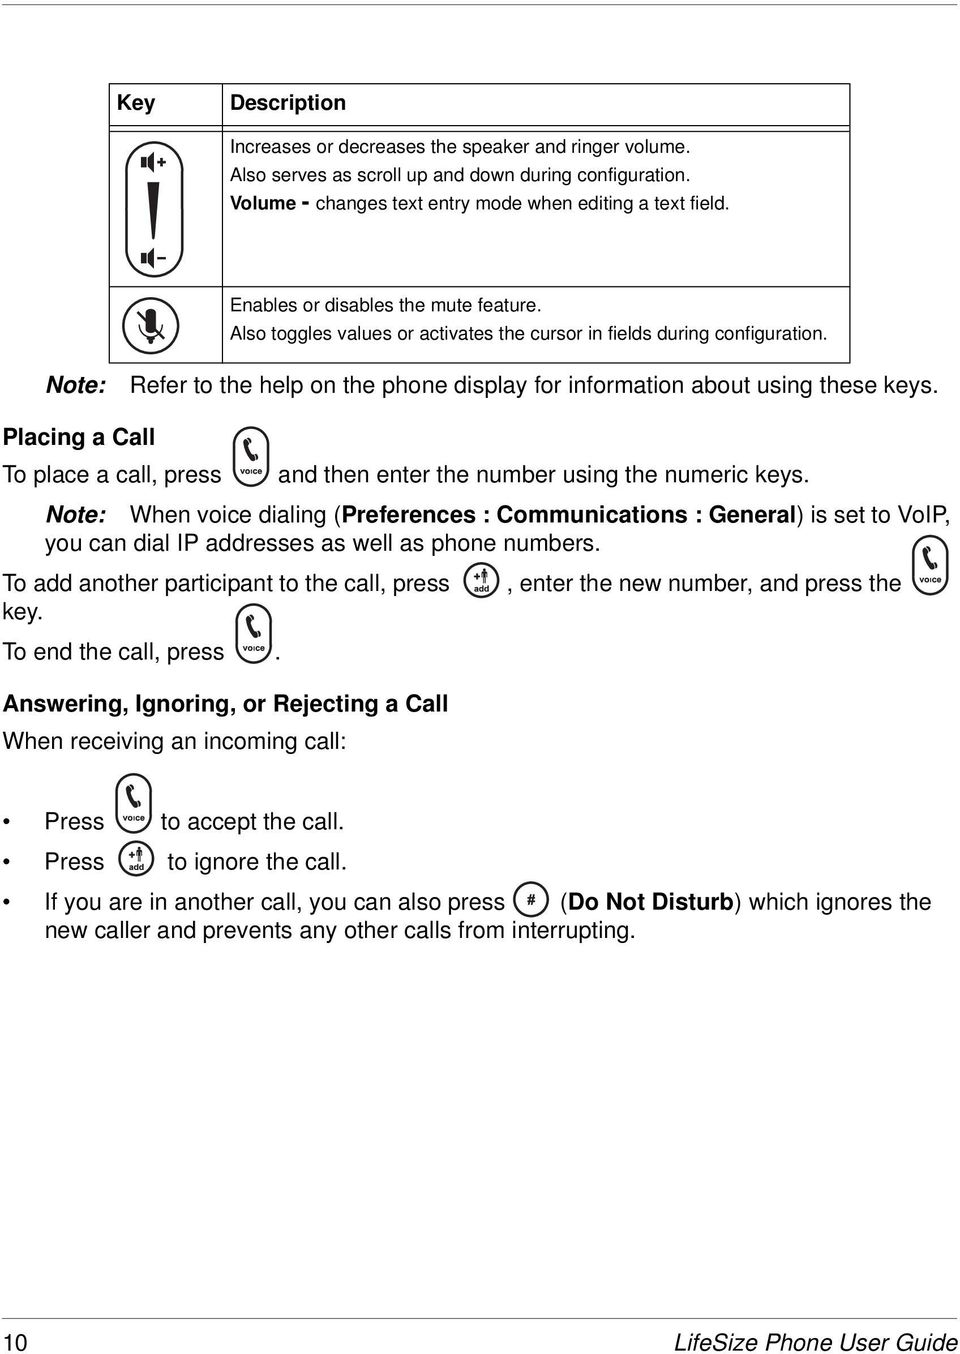 Placing a Call To place a call, press and then enter the number using the numeric keys.